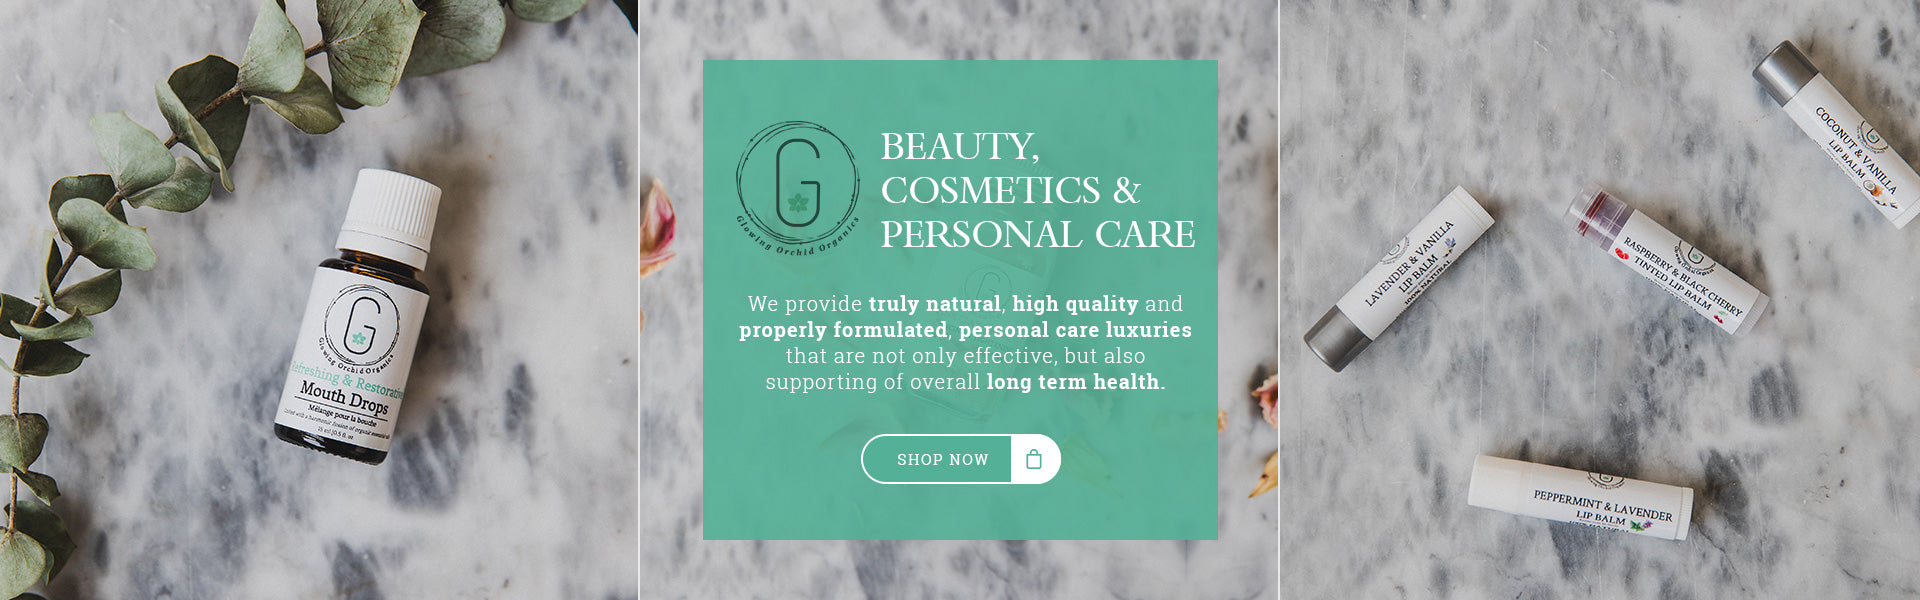 Glowing Orchid Organics love the glow share the glow, personal care luxuries banner image, lip balms, mouth drops, face mask. Natural Organic Skincare